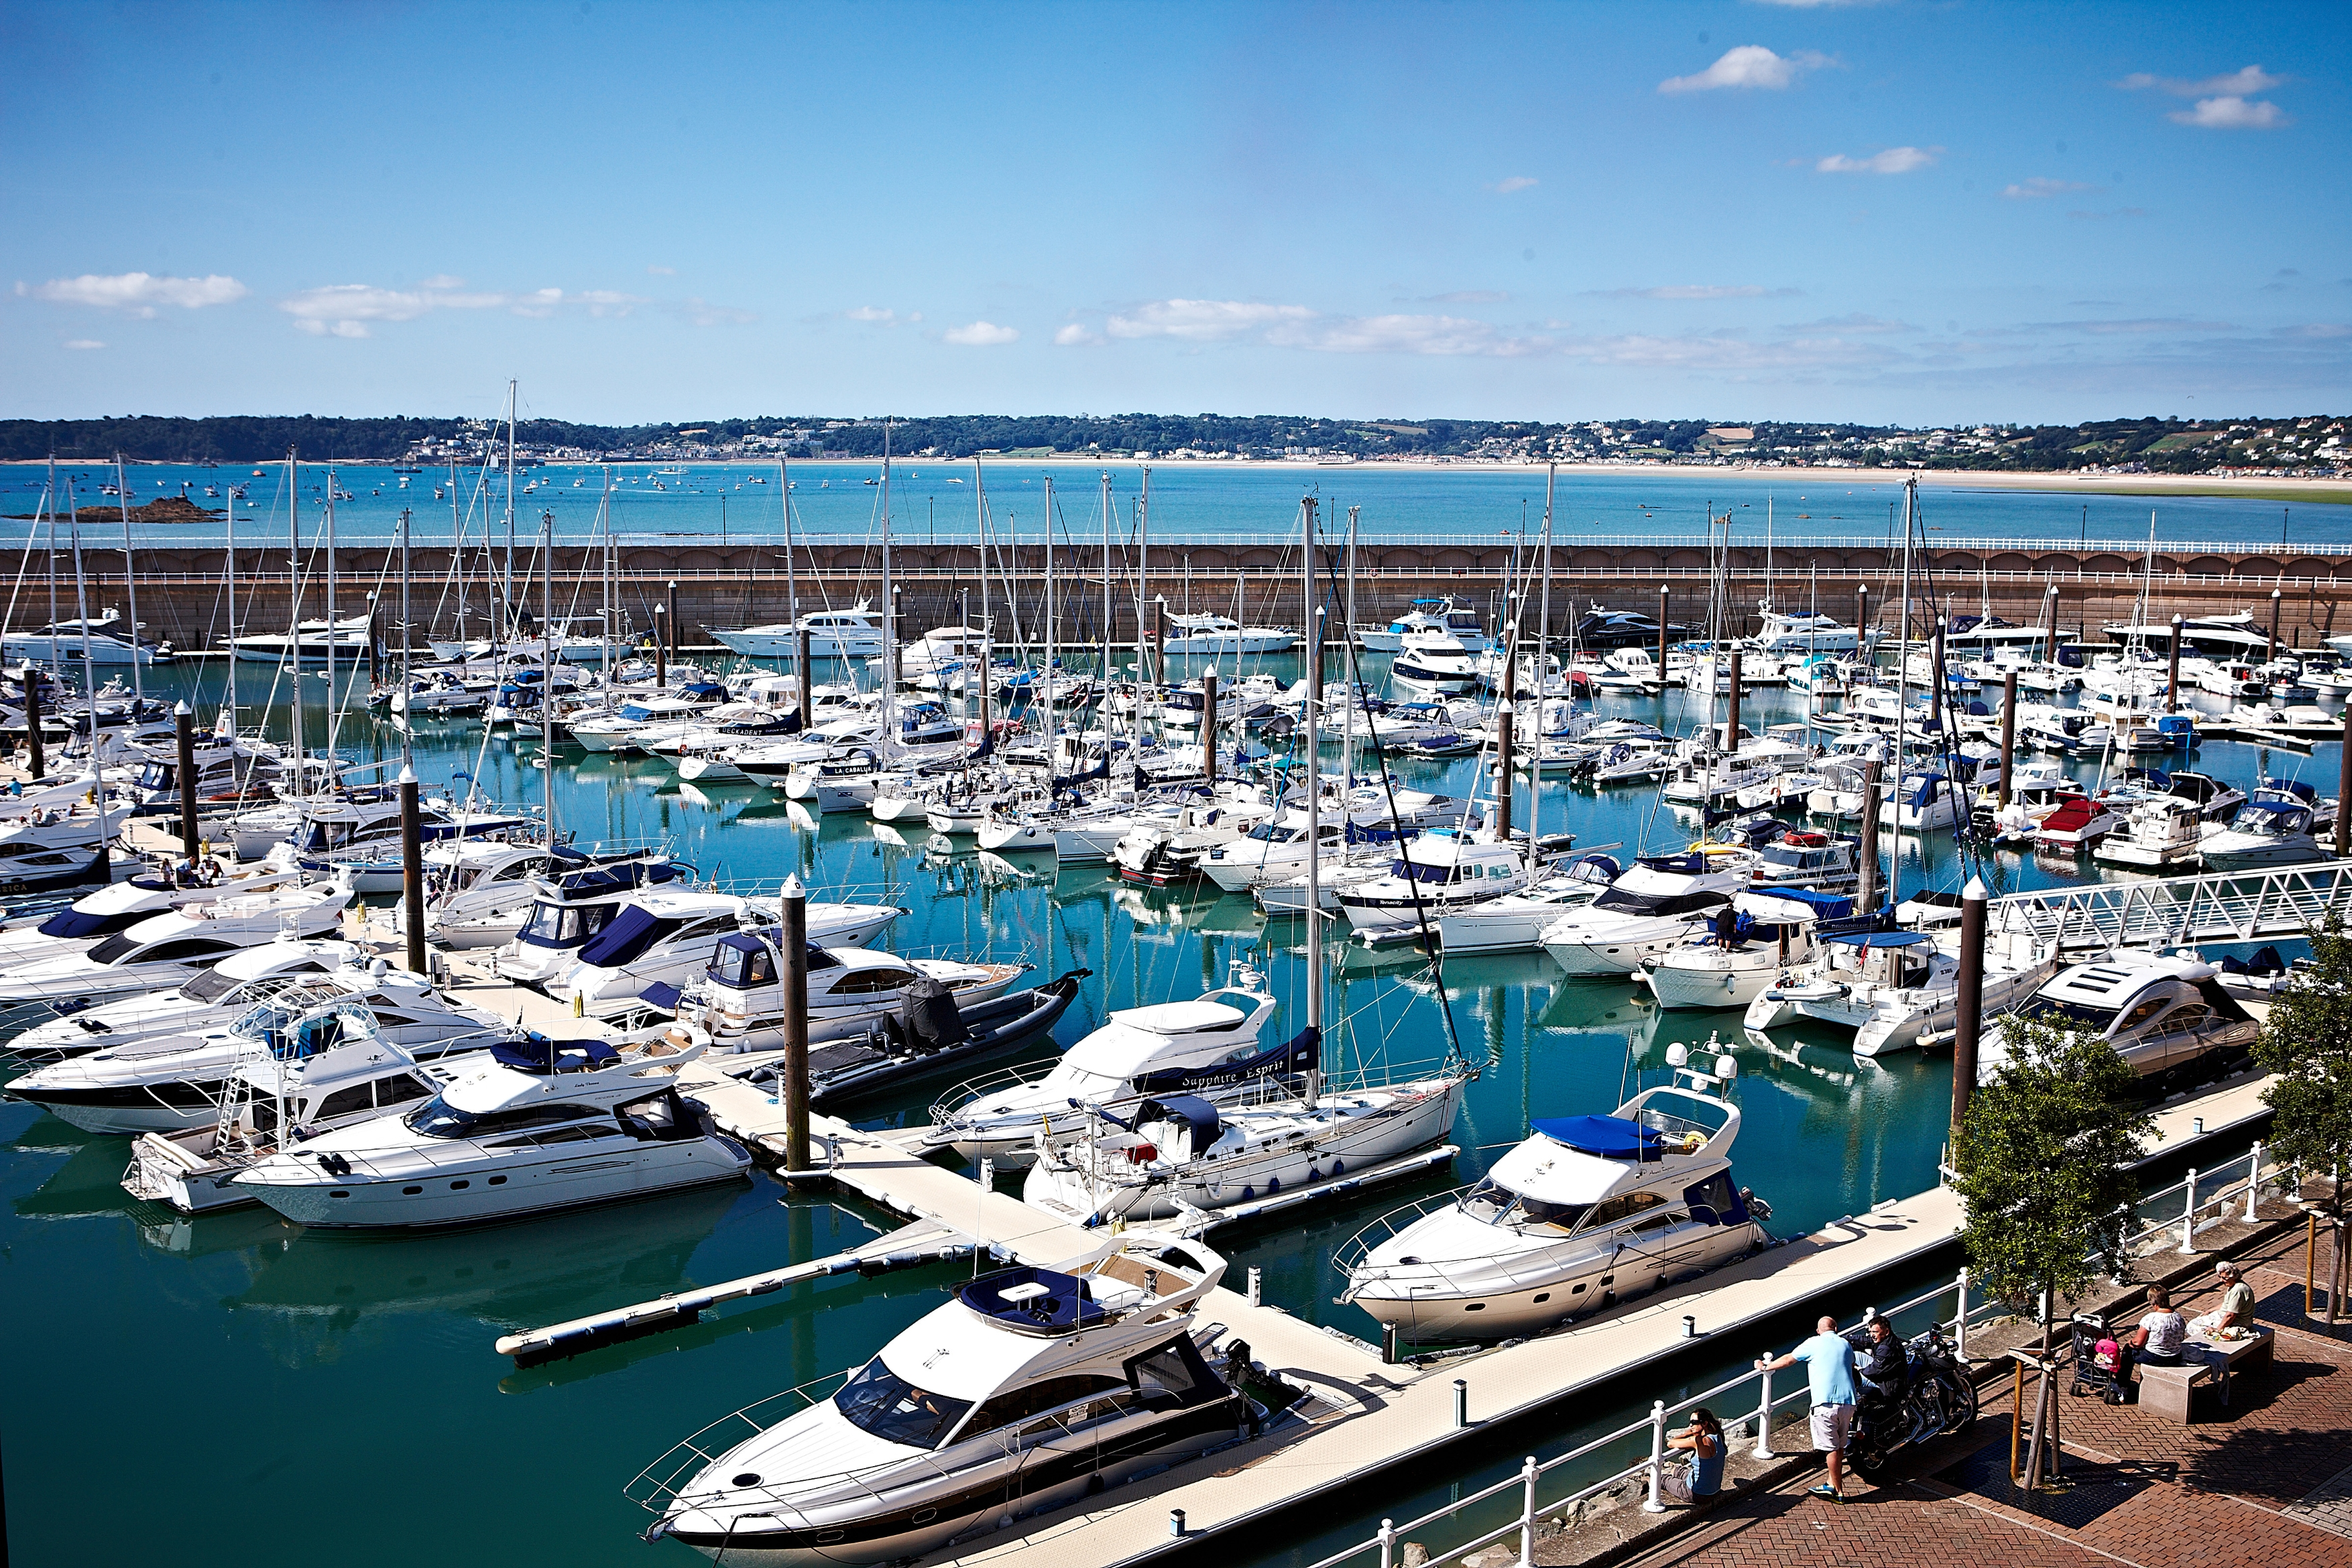 Elizabeth Marina, The Waterfront, St Helier